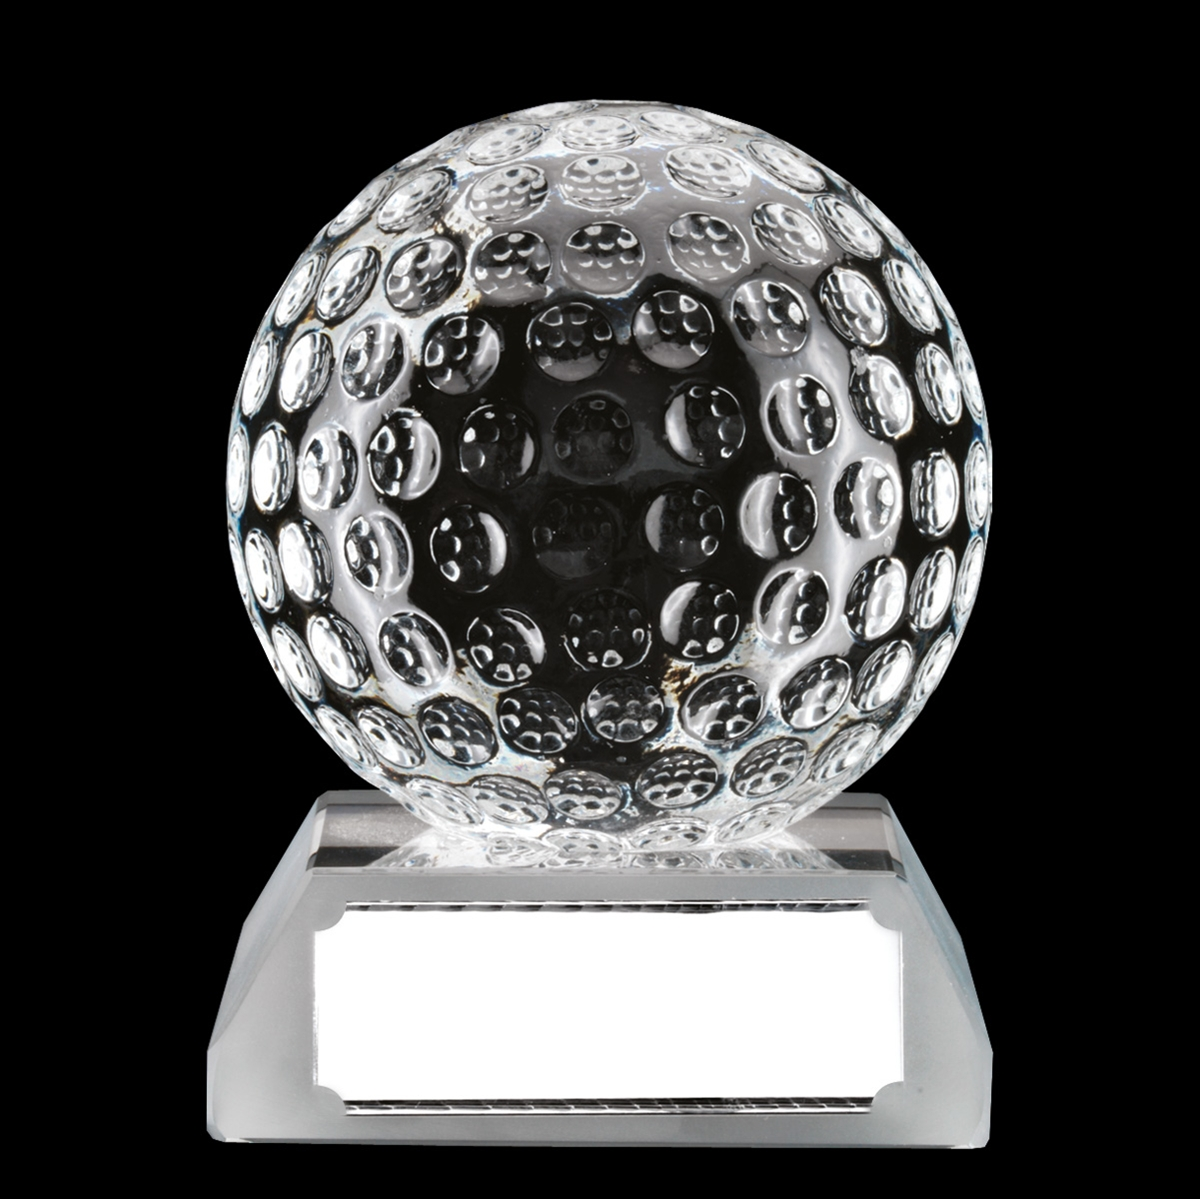 3D Ball Golf Trophy